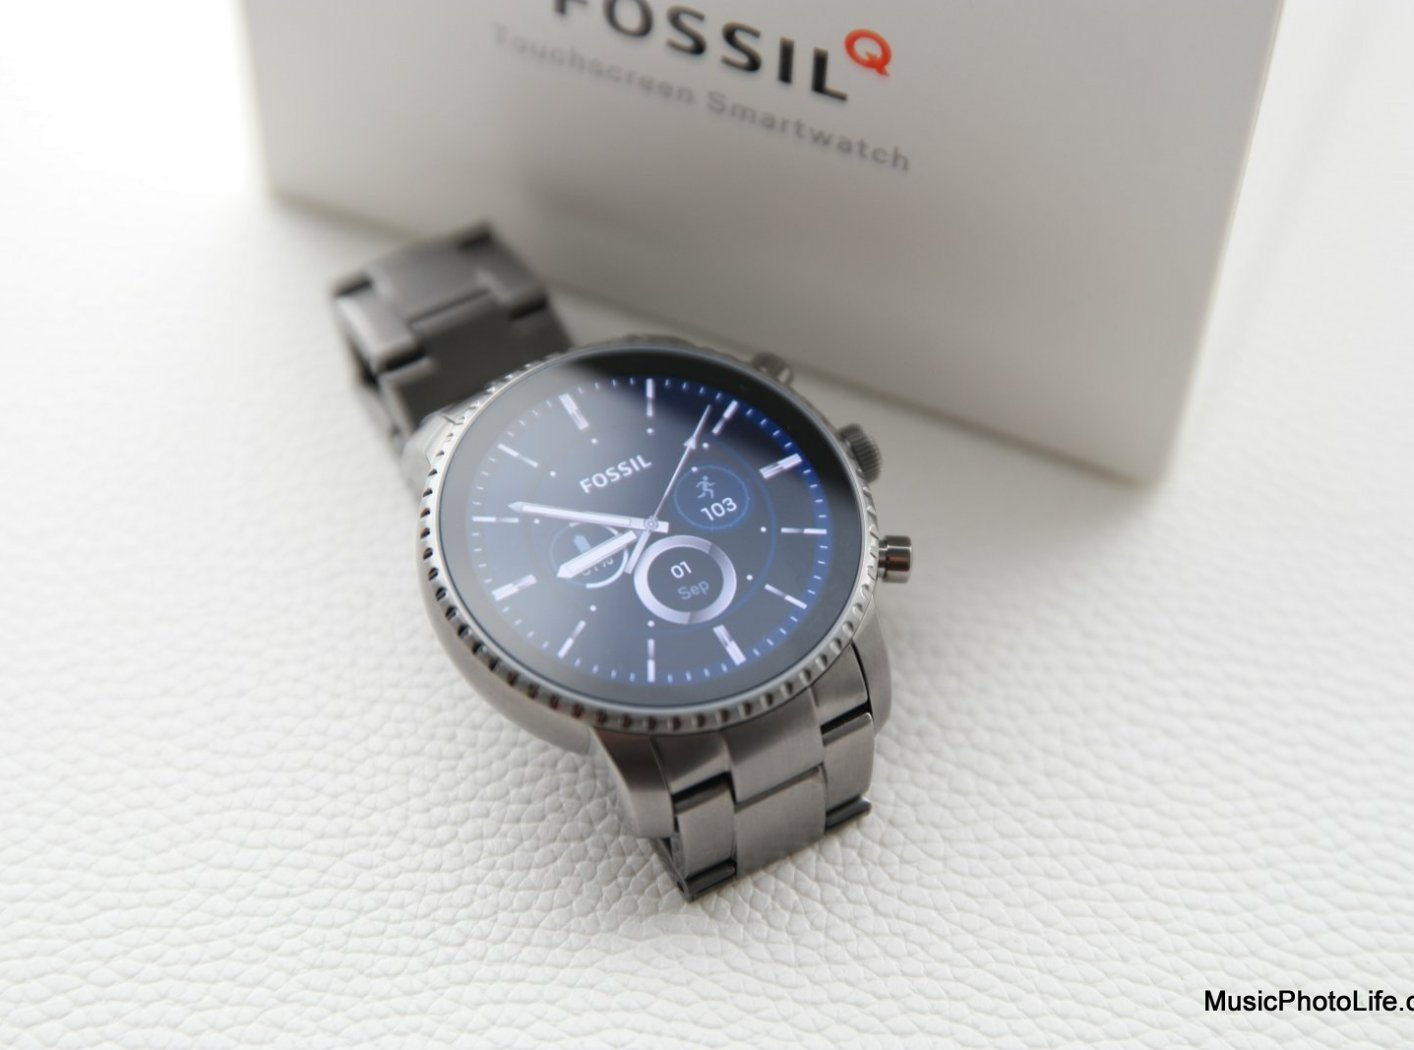 Fossil Q Explorist HR Review: Smartwatch with Iconic Fossil